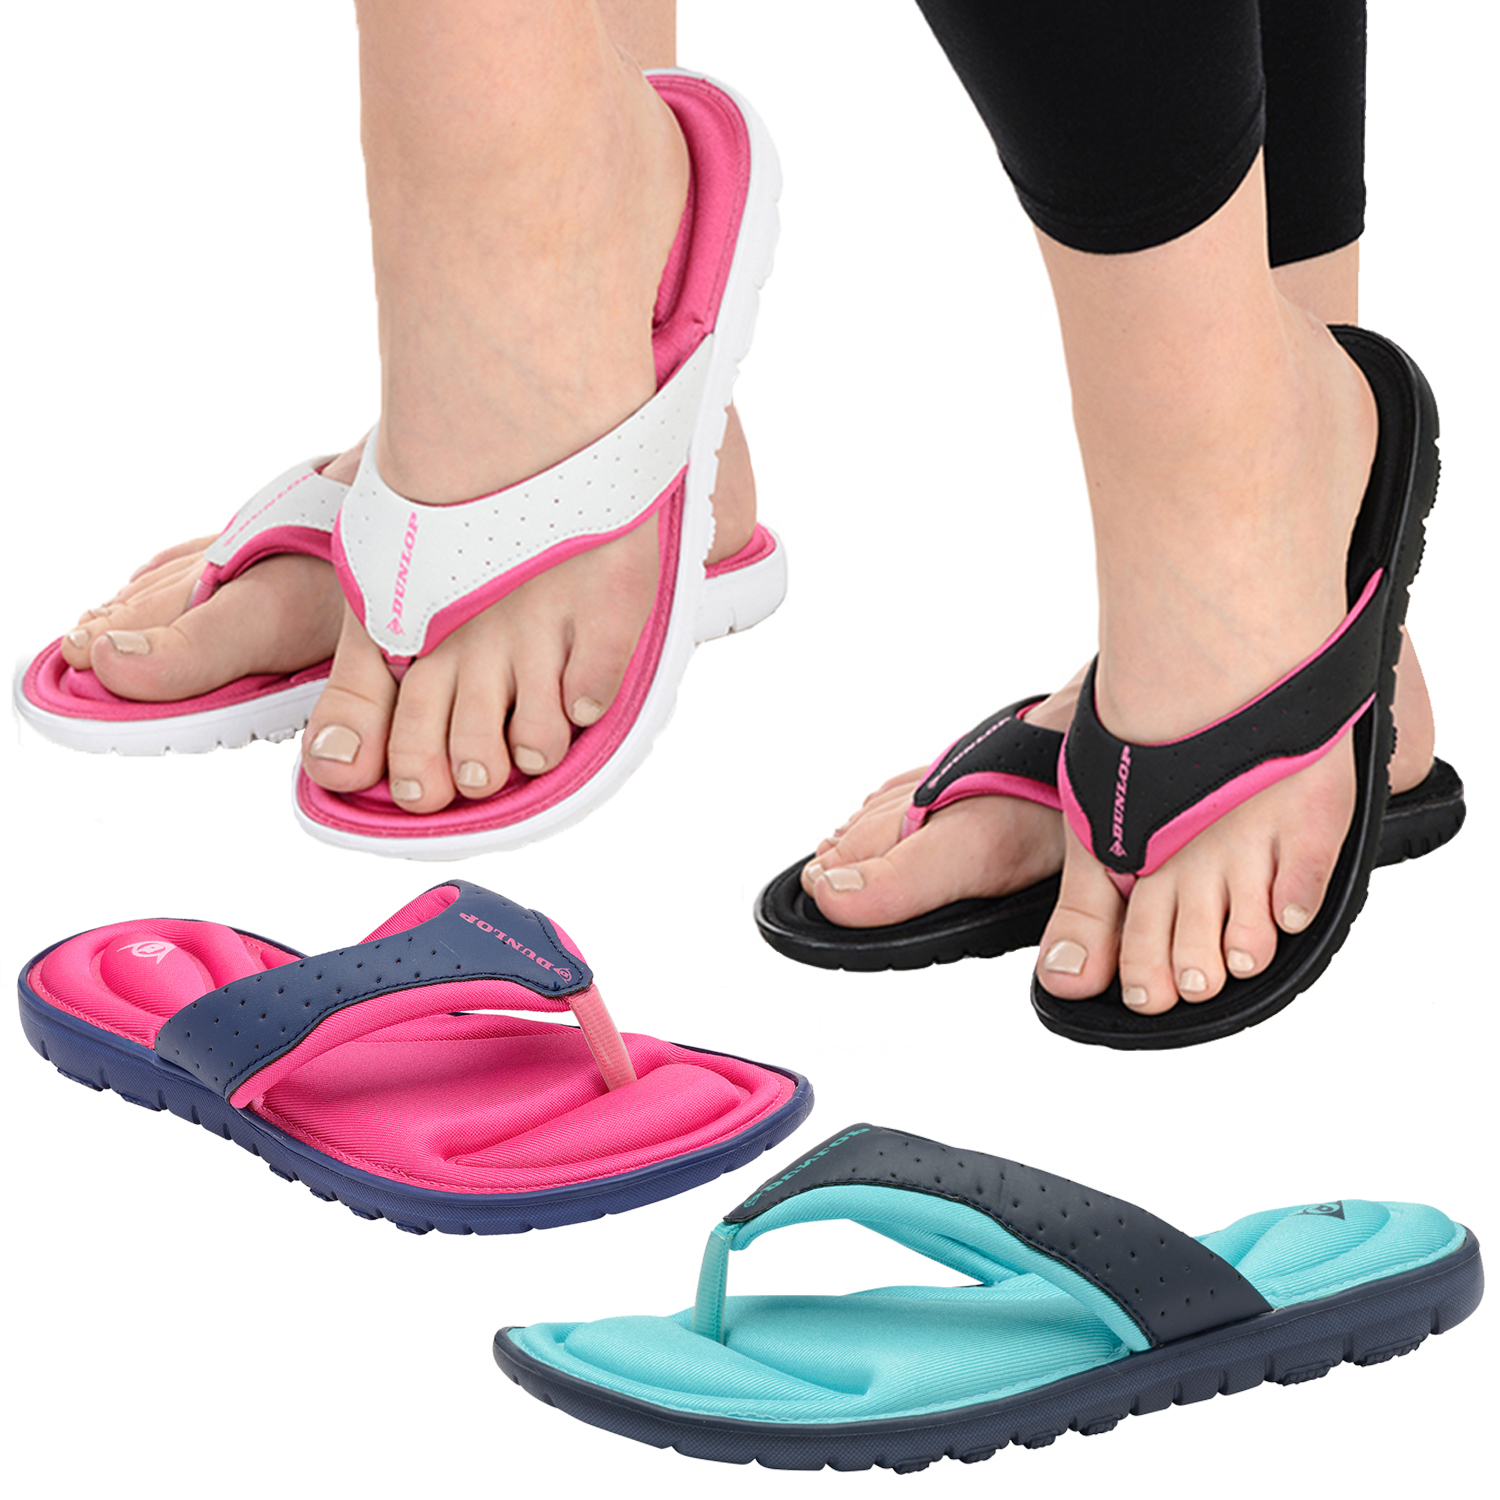 Womens Dunlop Flip Flops New Ladies Memory Foam Toe Post -2620